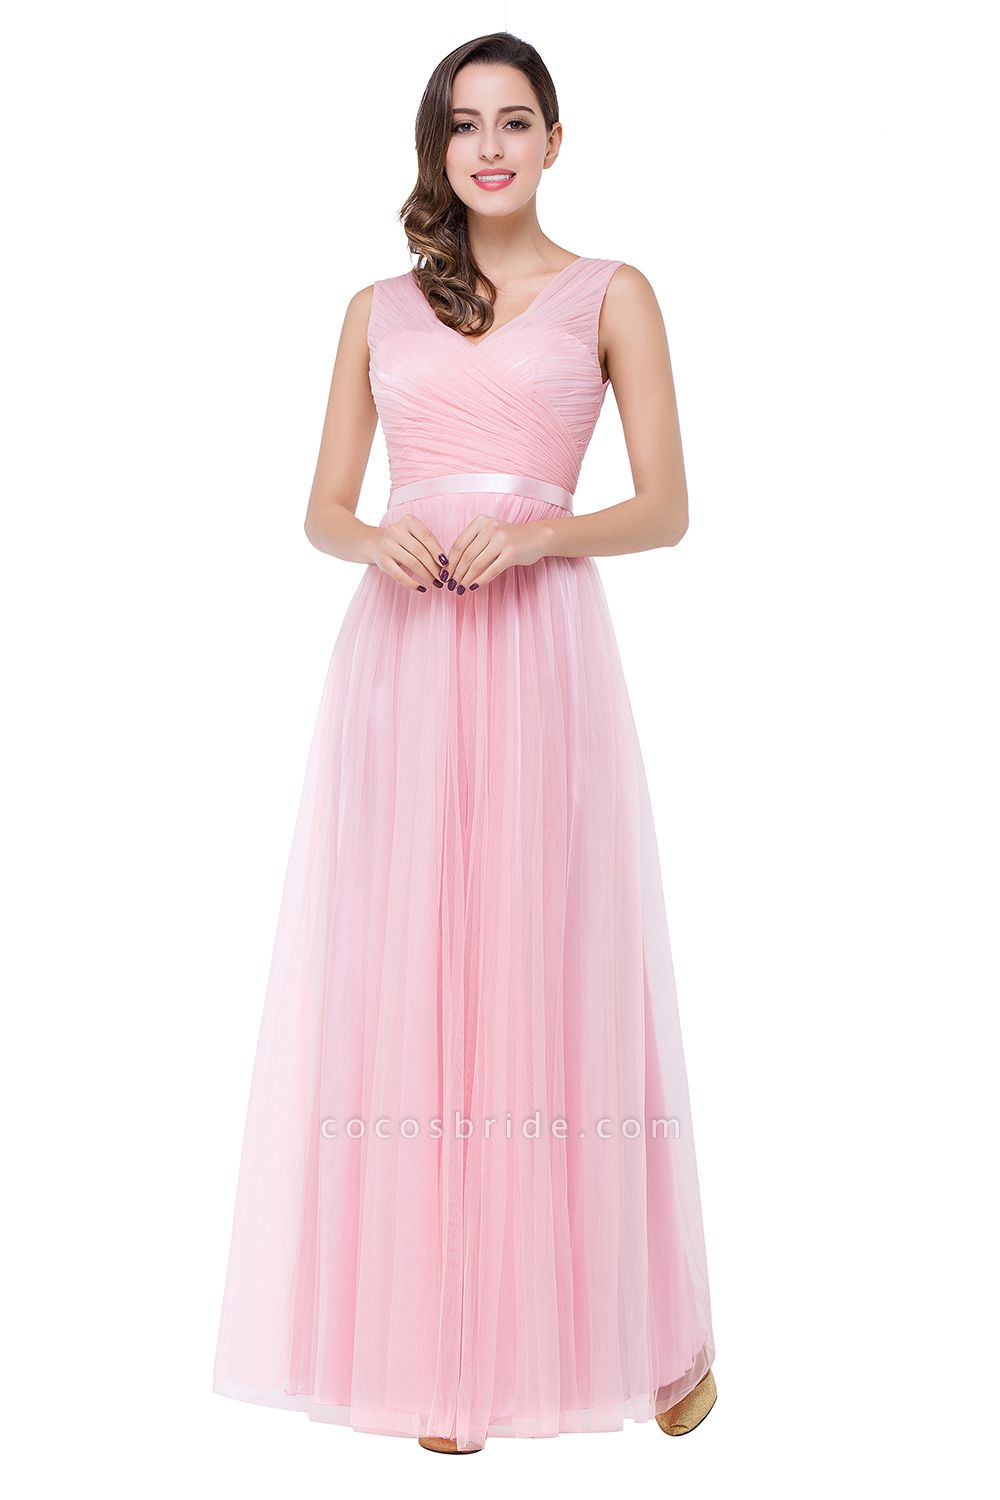 ELLIOT | A-line Sleeveless V-neck Floor-length Tulle Bridesmaid Dresses